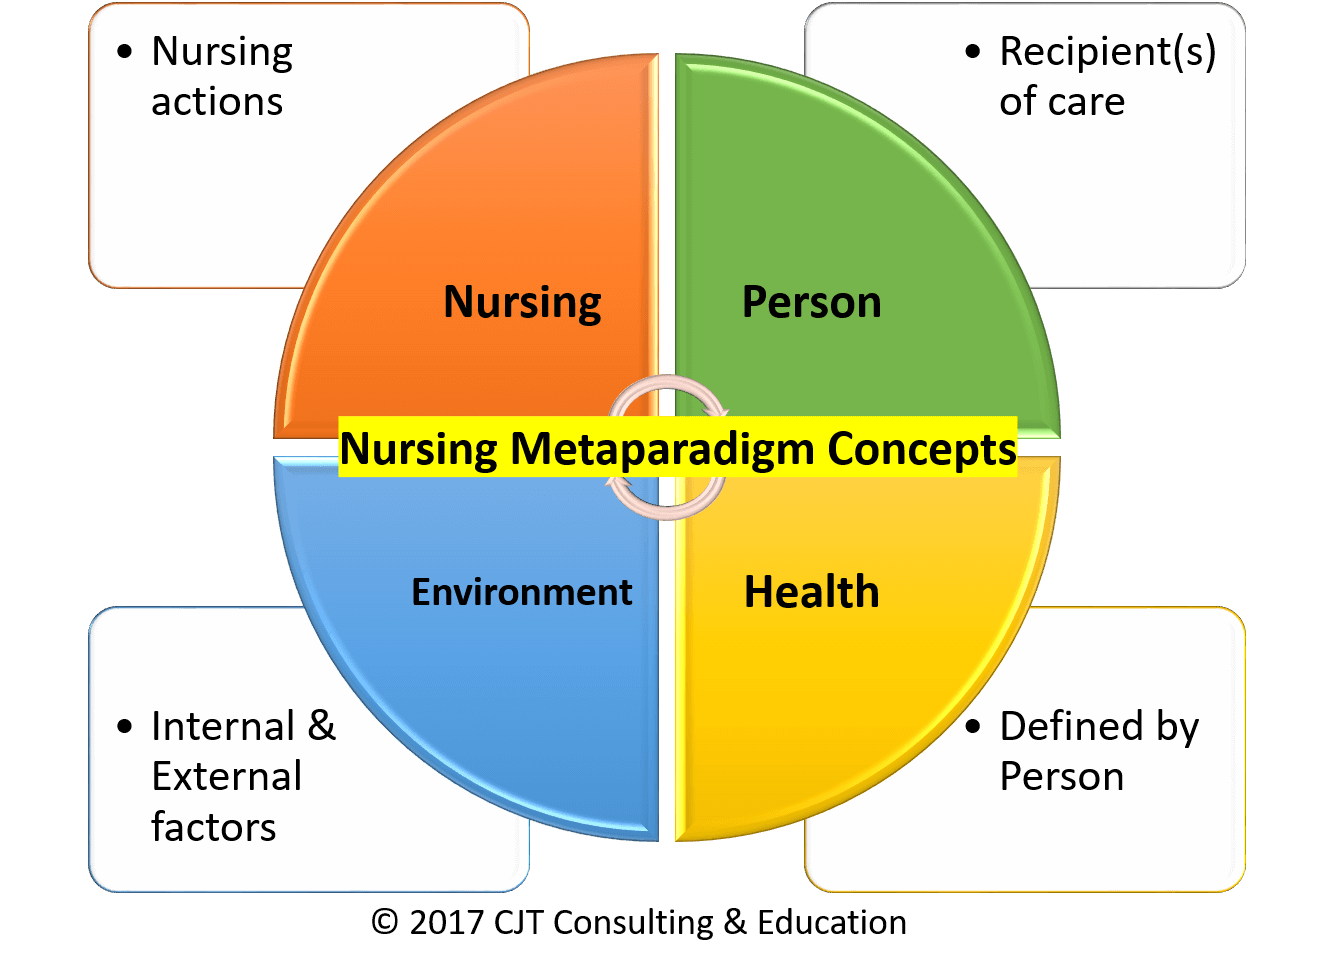 what is the nursing metaparadigm? nursing education expert Roy Nursing Theory Diagram the four nursing metaparadigm concepts